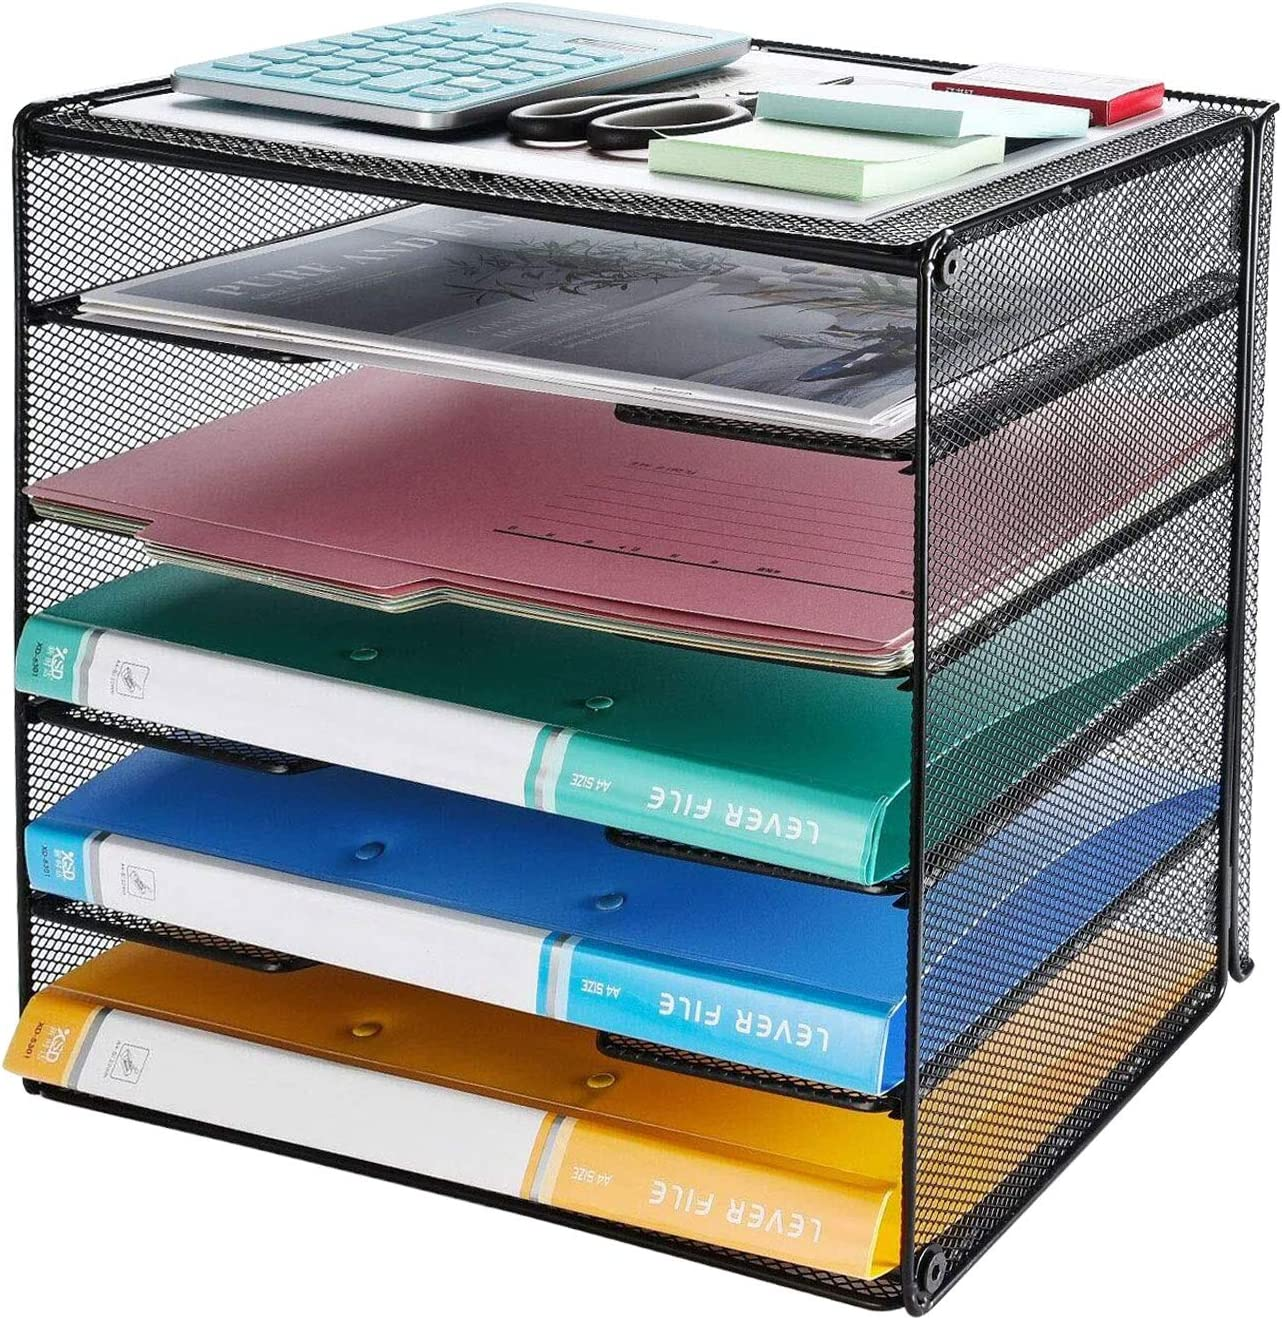 Veesun Paper Letter Tray Organizer, Mesh Desk File Organizer with 5 Tier Shelf Sorter, Black